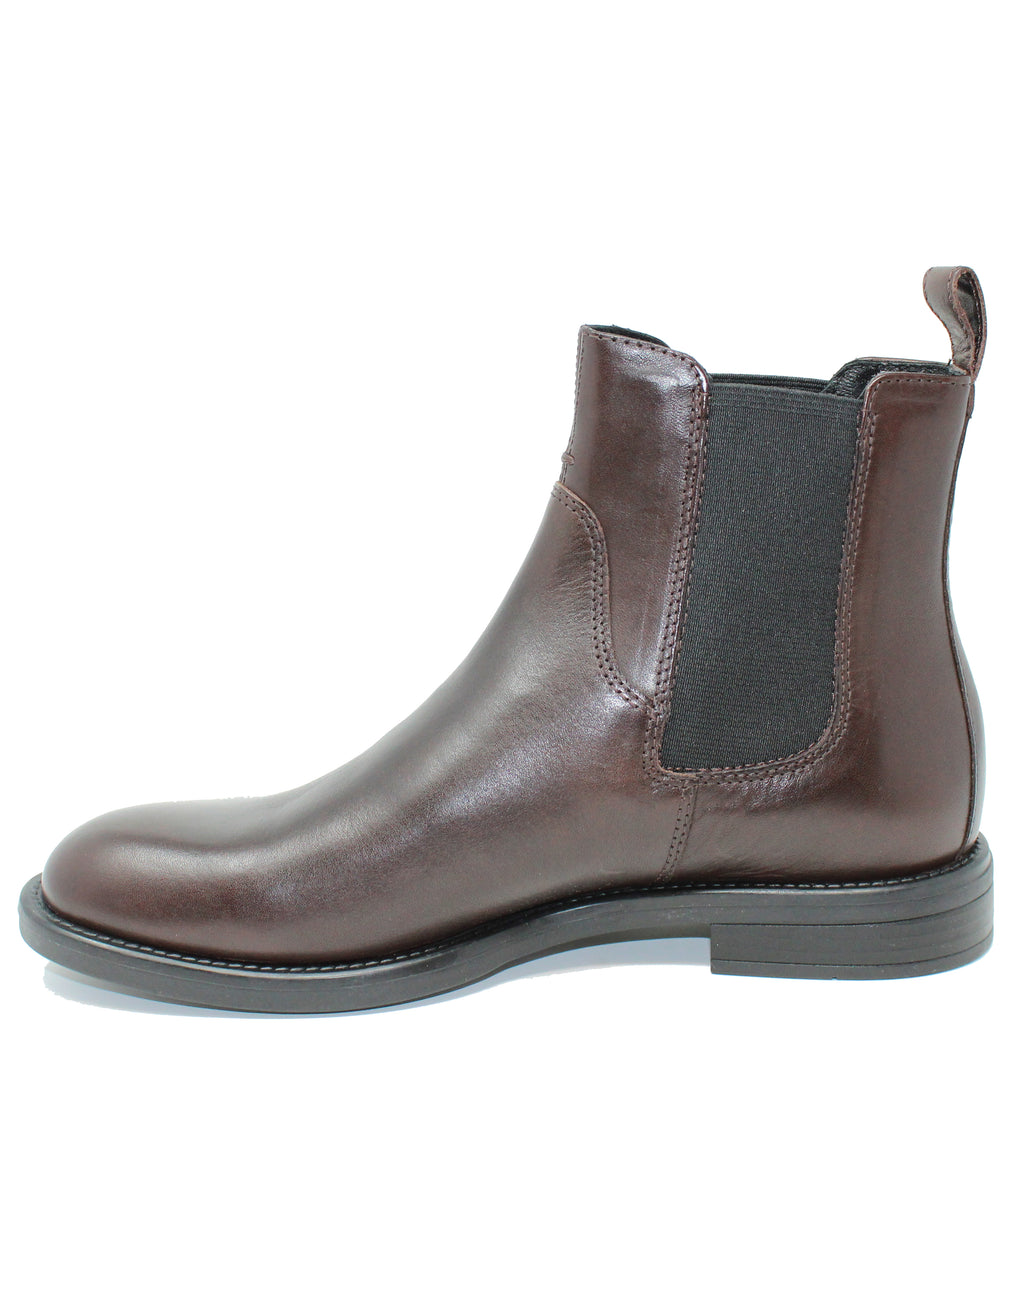 Vagabond Shoemakers Amina Espresso Ankle Boot